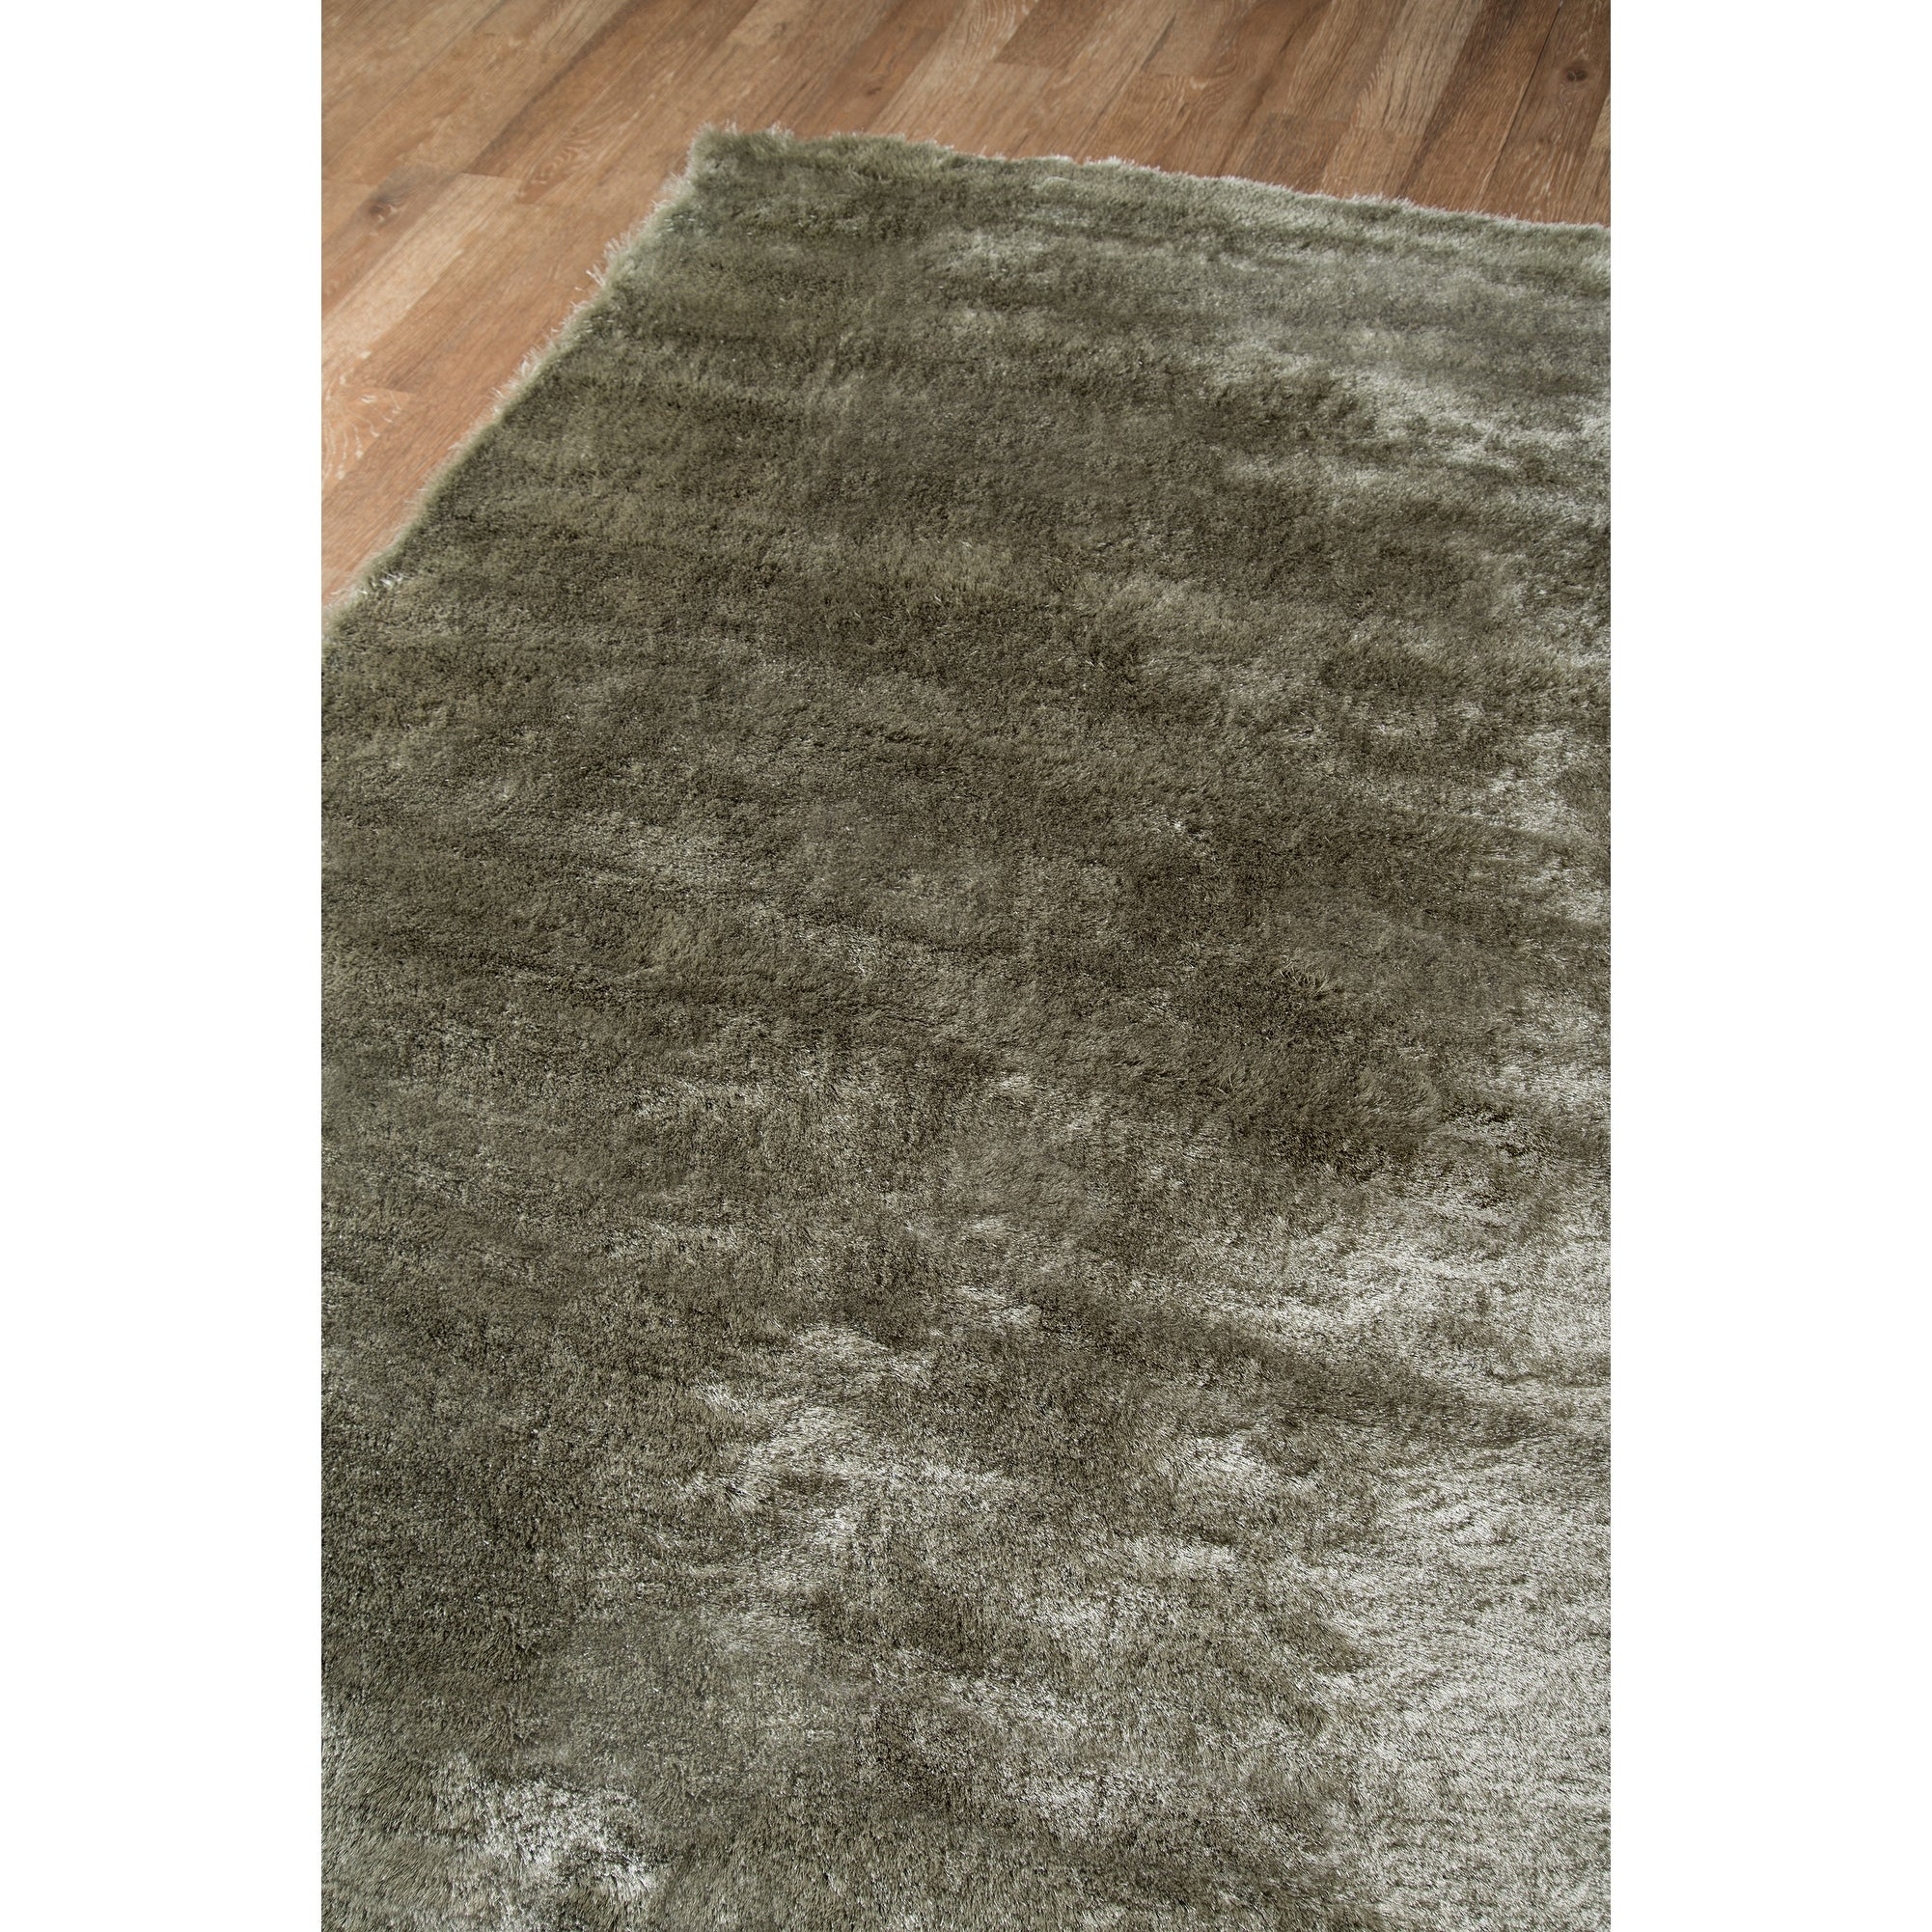 Hand Tufted High Pile Shag Area Rug Momeni Rugs LSHAGLS-01GRY2380 Luster Shag Collection 23 x 8 Runner Grey